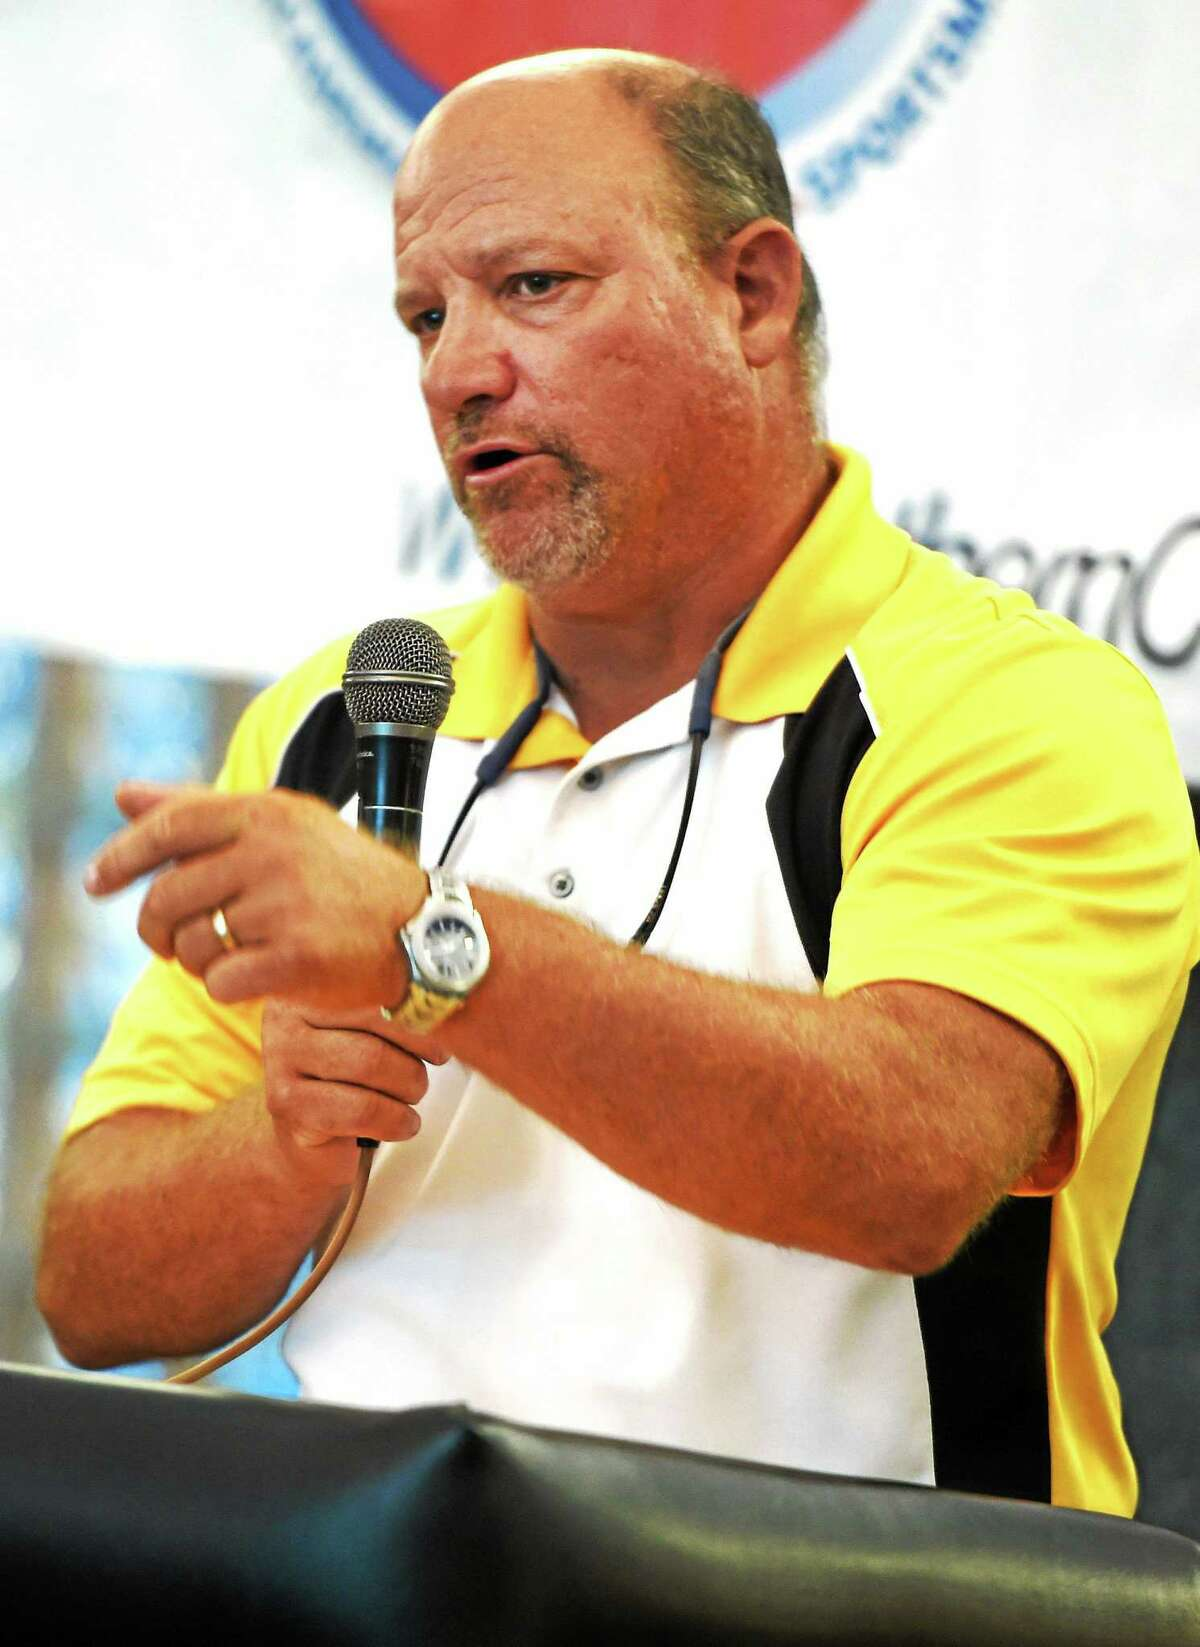 (Peter Hvizdak - New Haven Register) ¬ Daniel Hand H.S> football coach Steve Filippone speaks about his team and the league during SCC Football Media NIght at the Floyd Little Athletic Center in New Haven Sunday, August 24, 2014. ¬